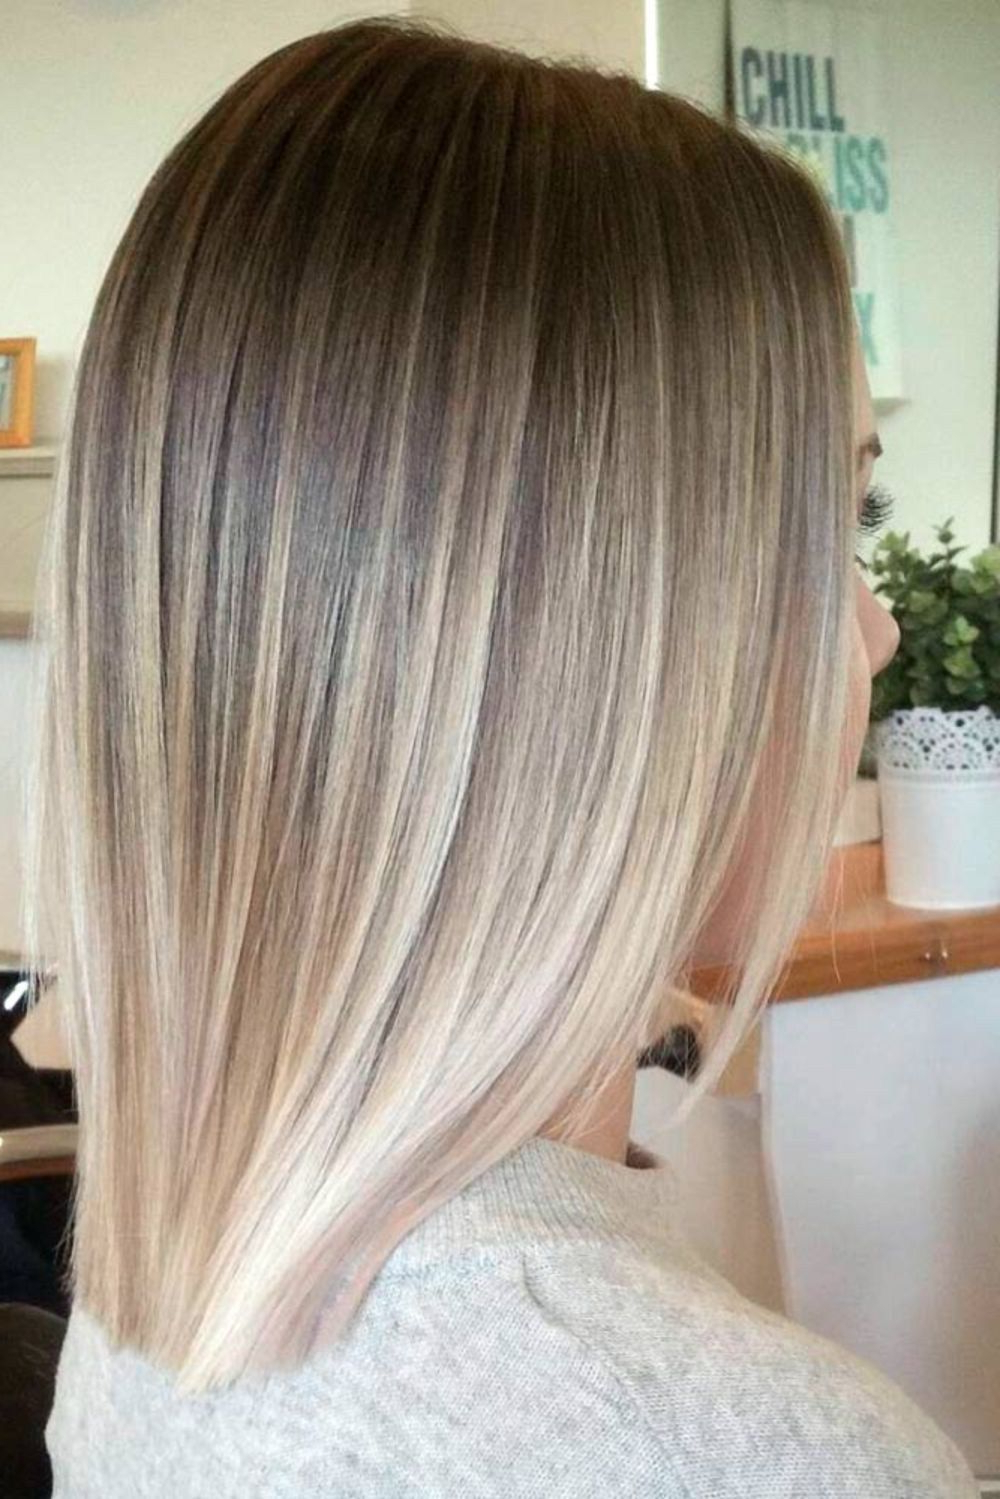 Find Out Full Gallery Of Unique Cute Fall Hair Colors For Short Hair Inside Cute Color For Short Hair (View 5 of 25)